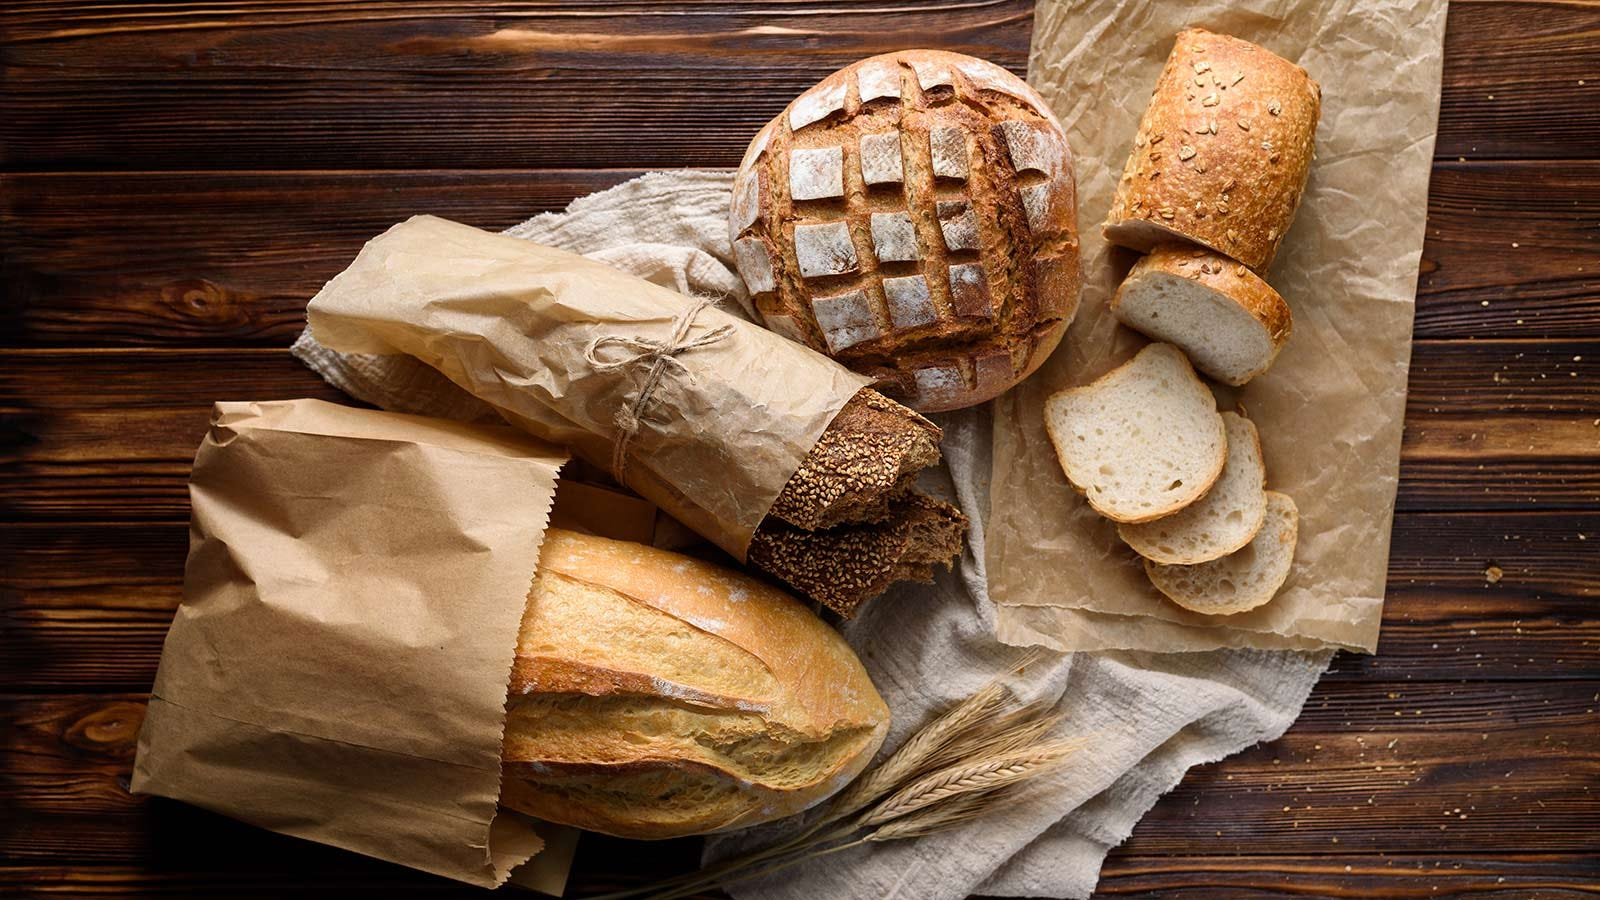 Four kinds of artisan bread, wrapped in or sitting on top of paper bags.